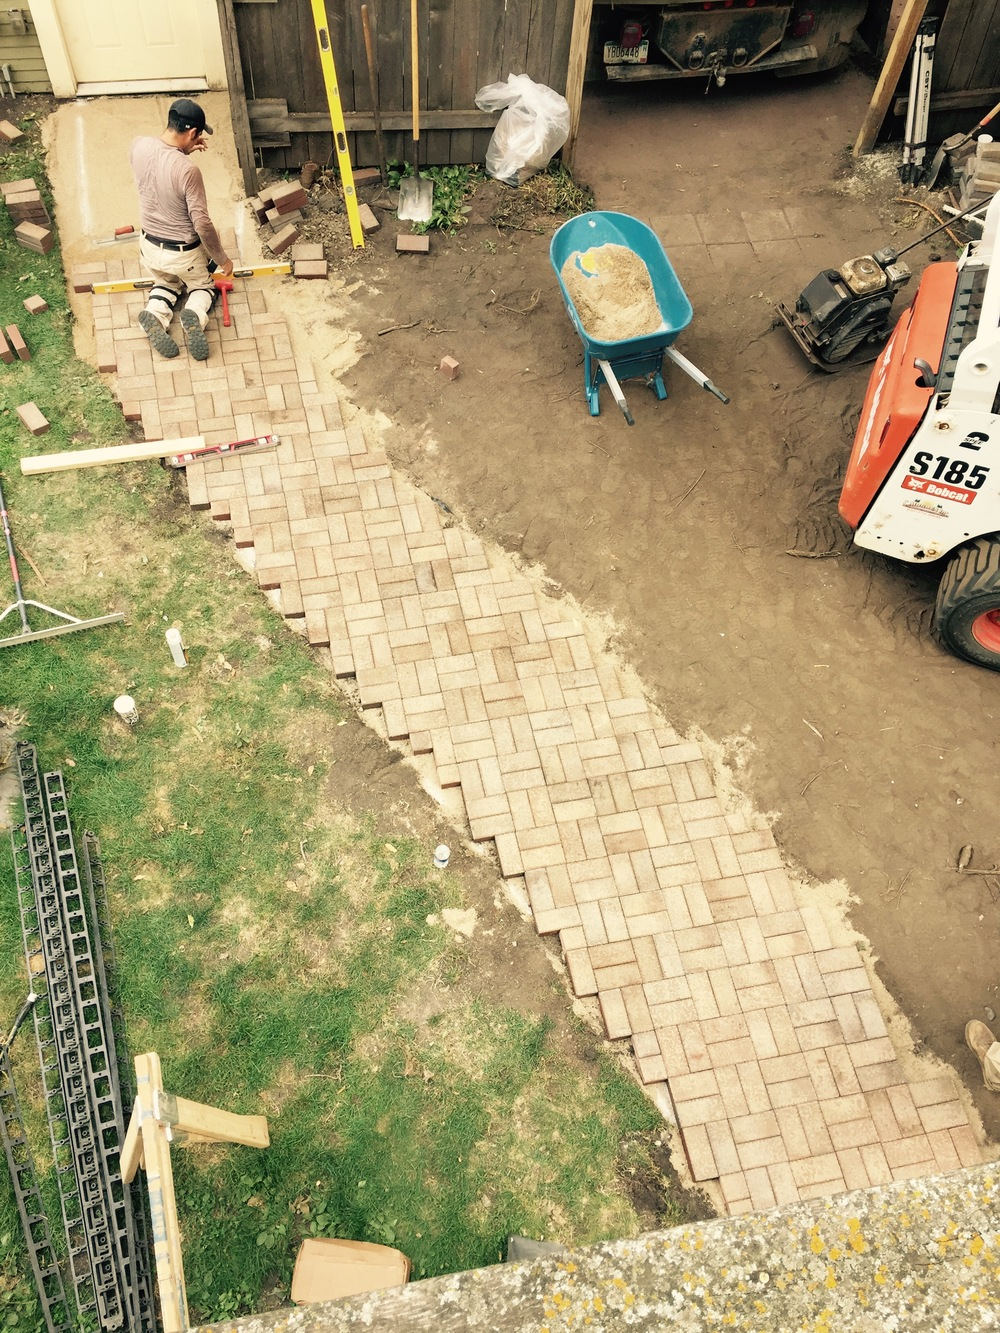 Look at that paver walkway = || = || =